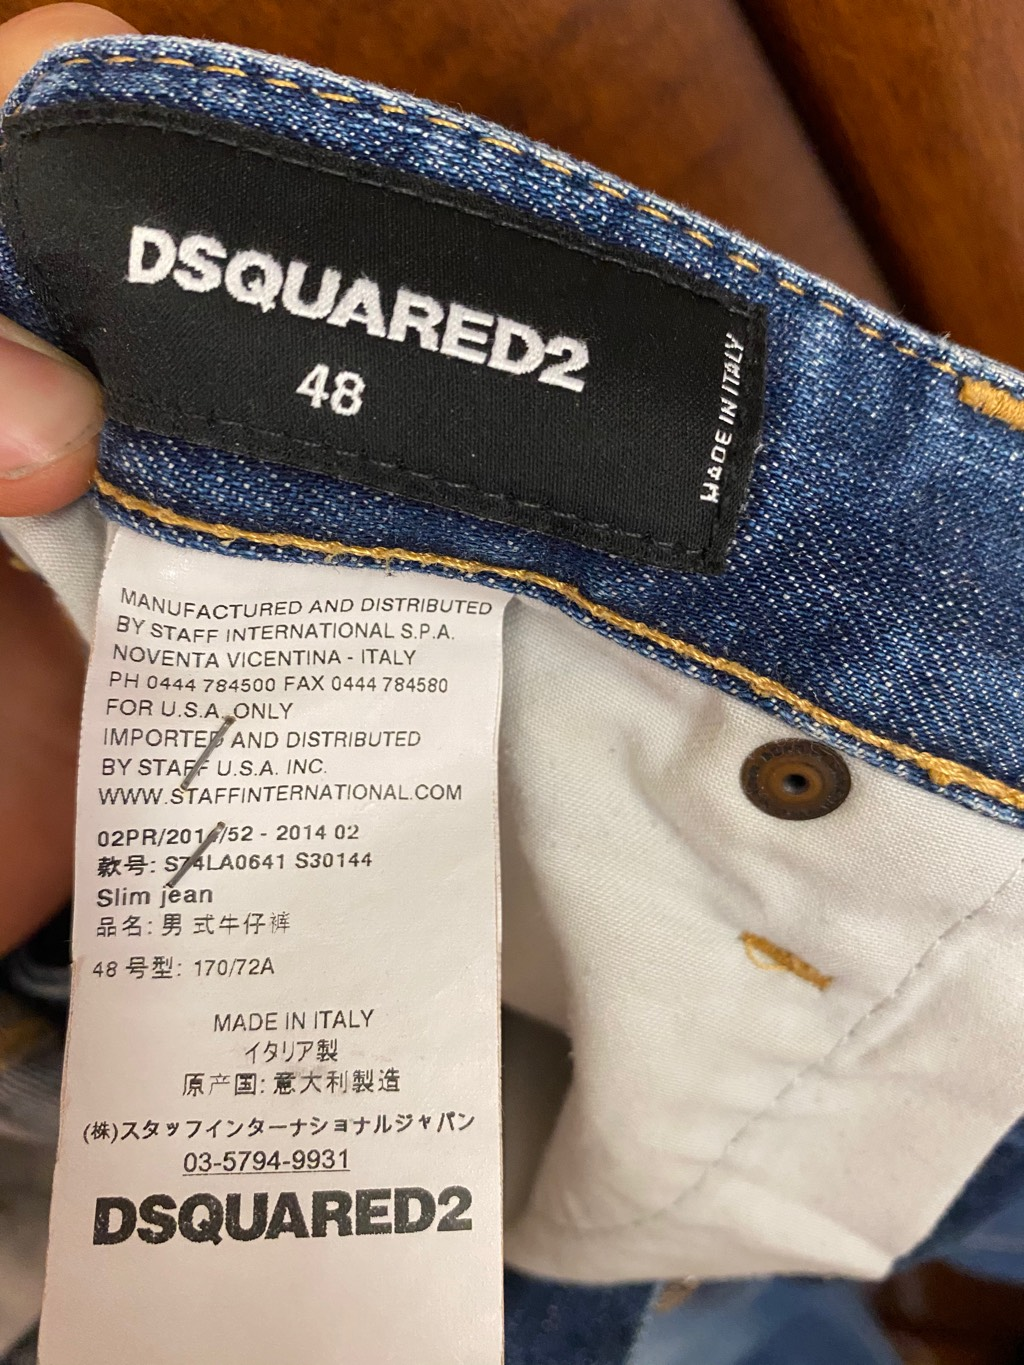 DSQUARED JEANS 48Dsquared24